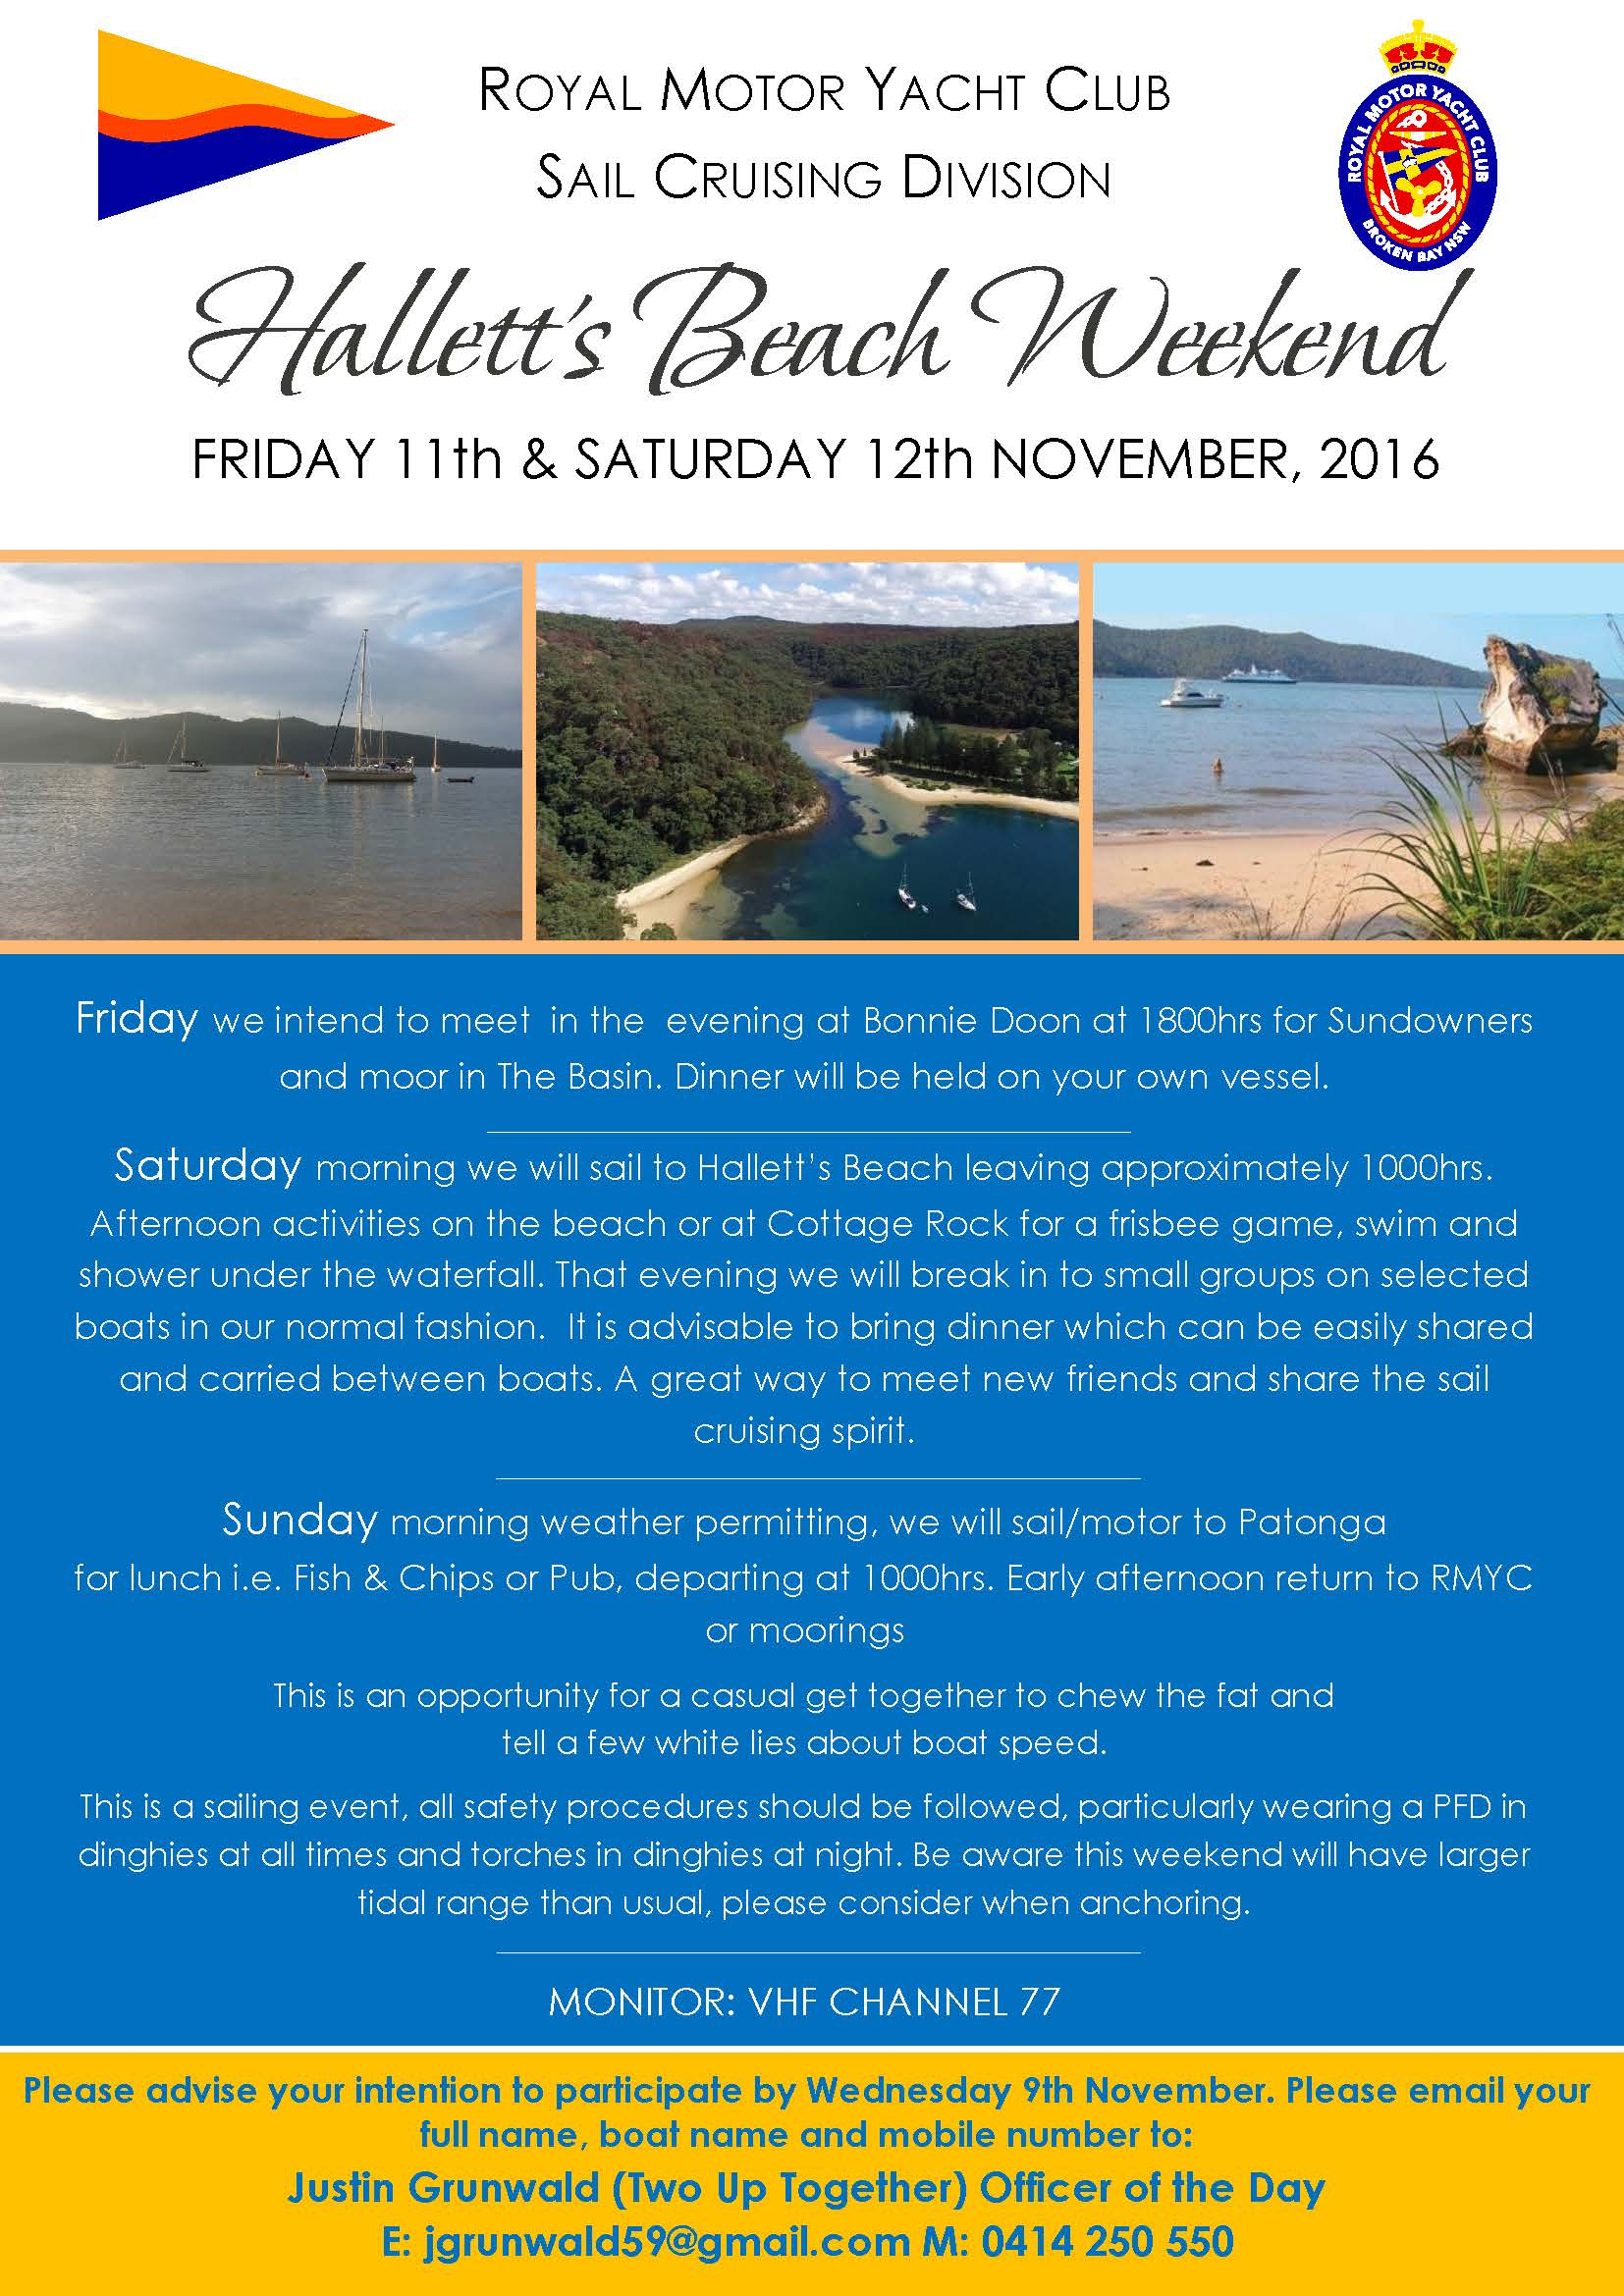 Halletts Beach Weekend 11th November 2016 V2